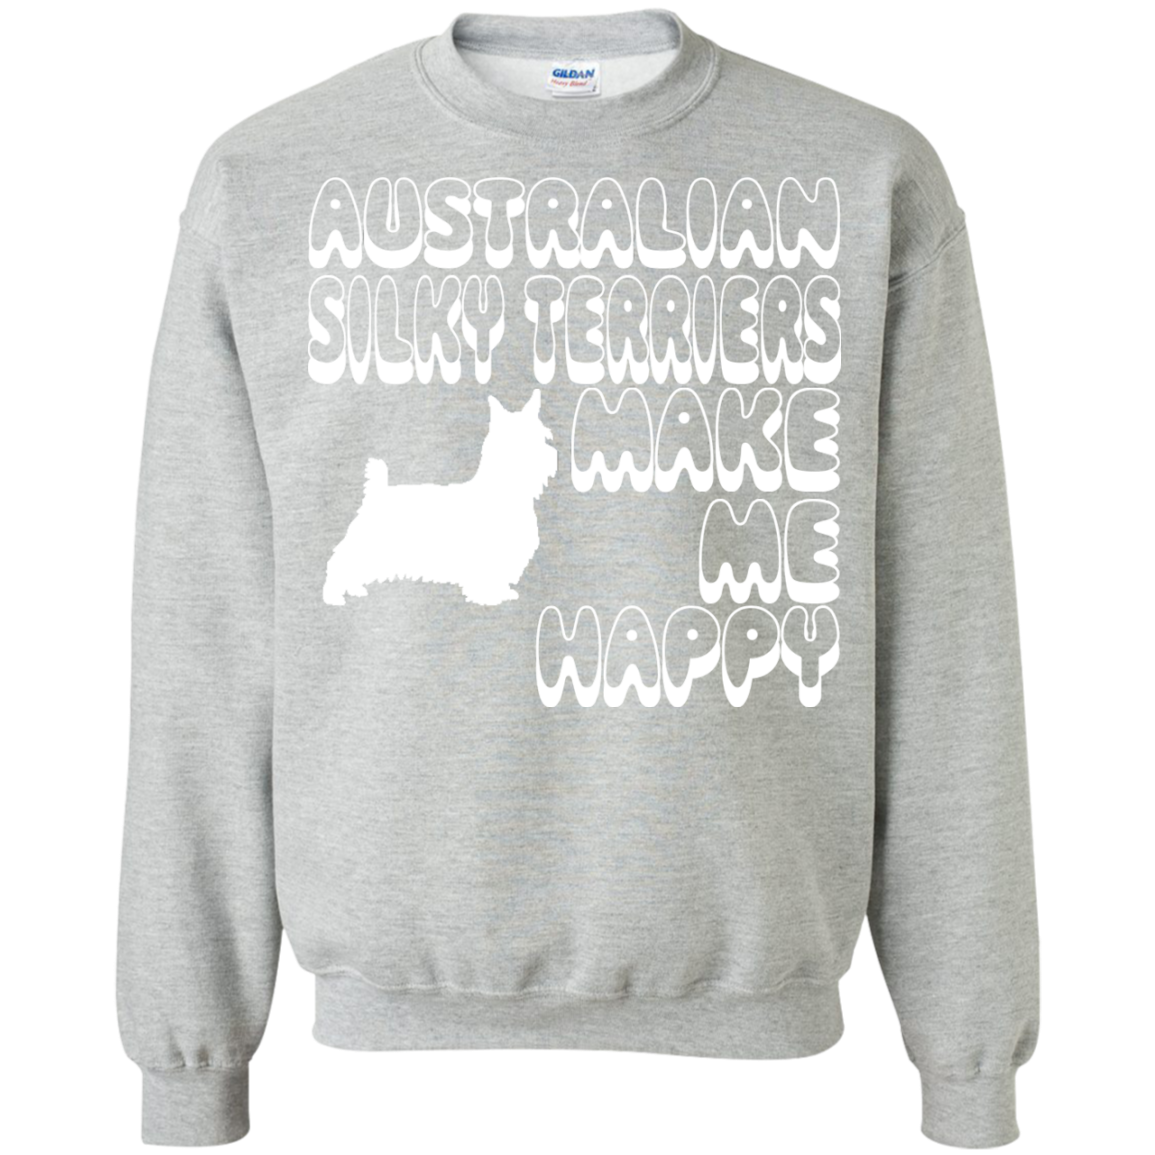 Australian Silky Terriers Make Me Happy Sweatshirts